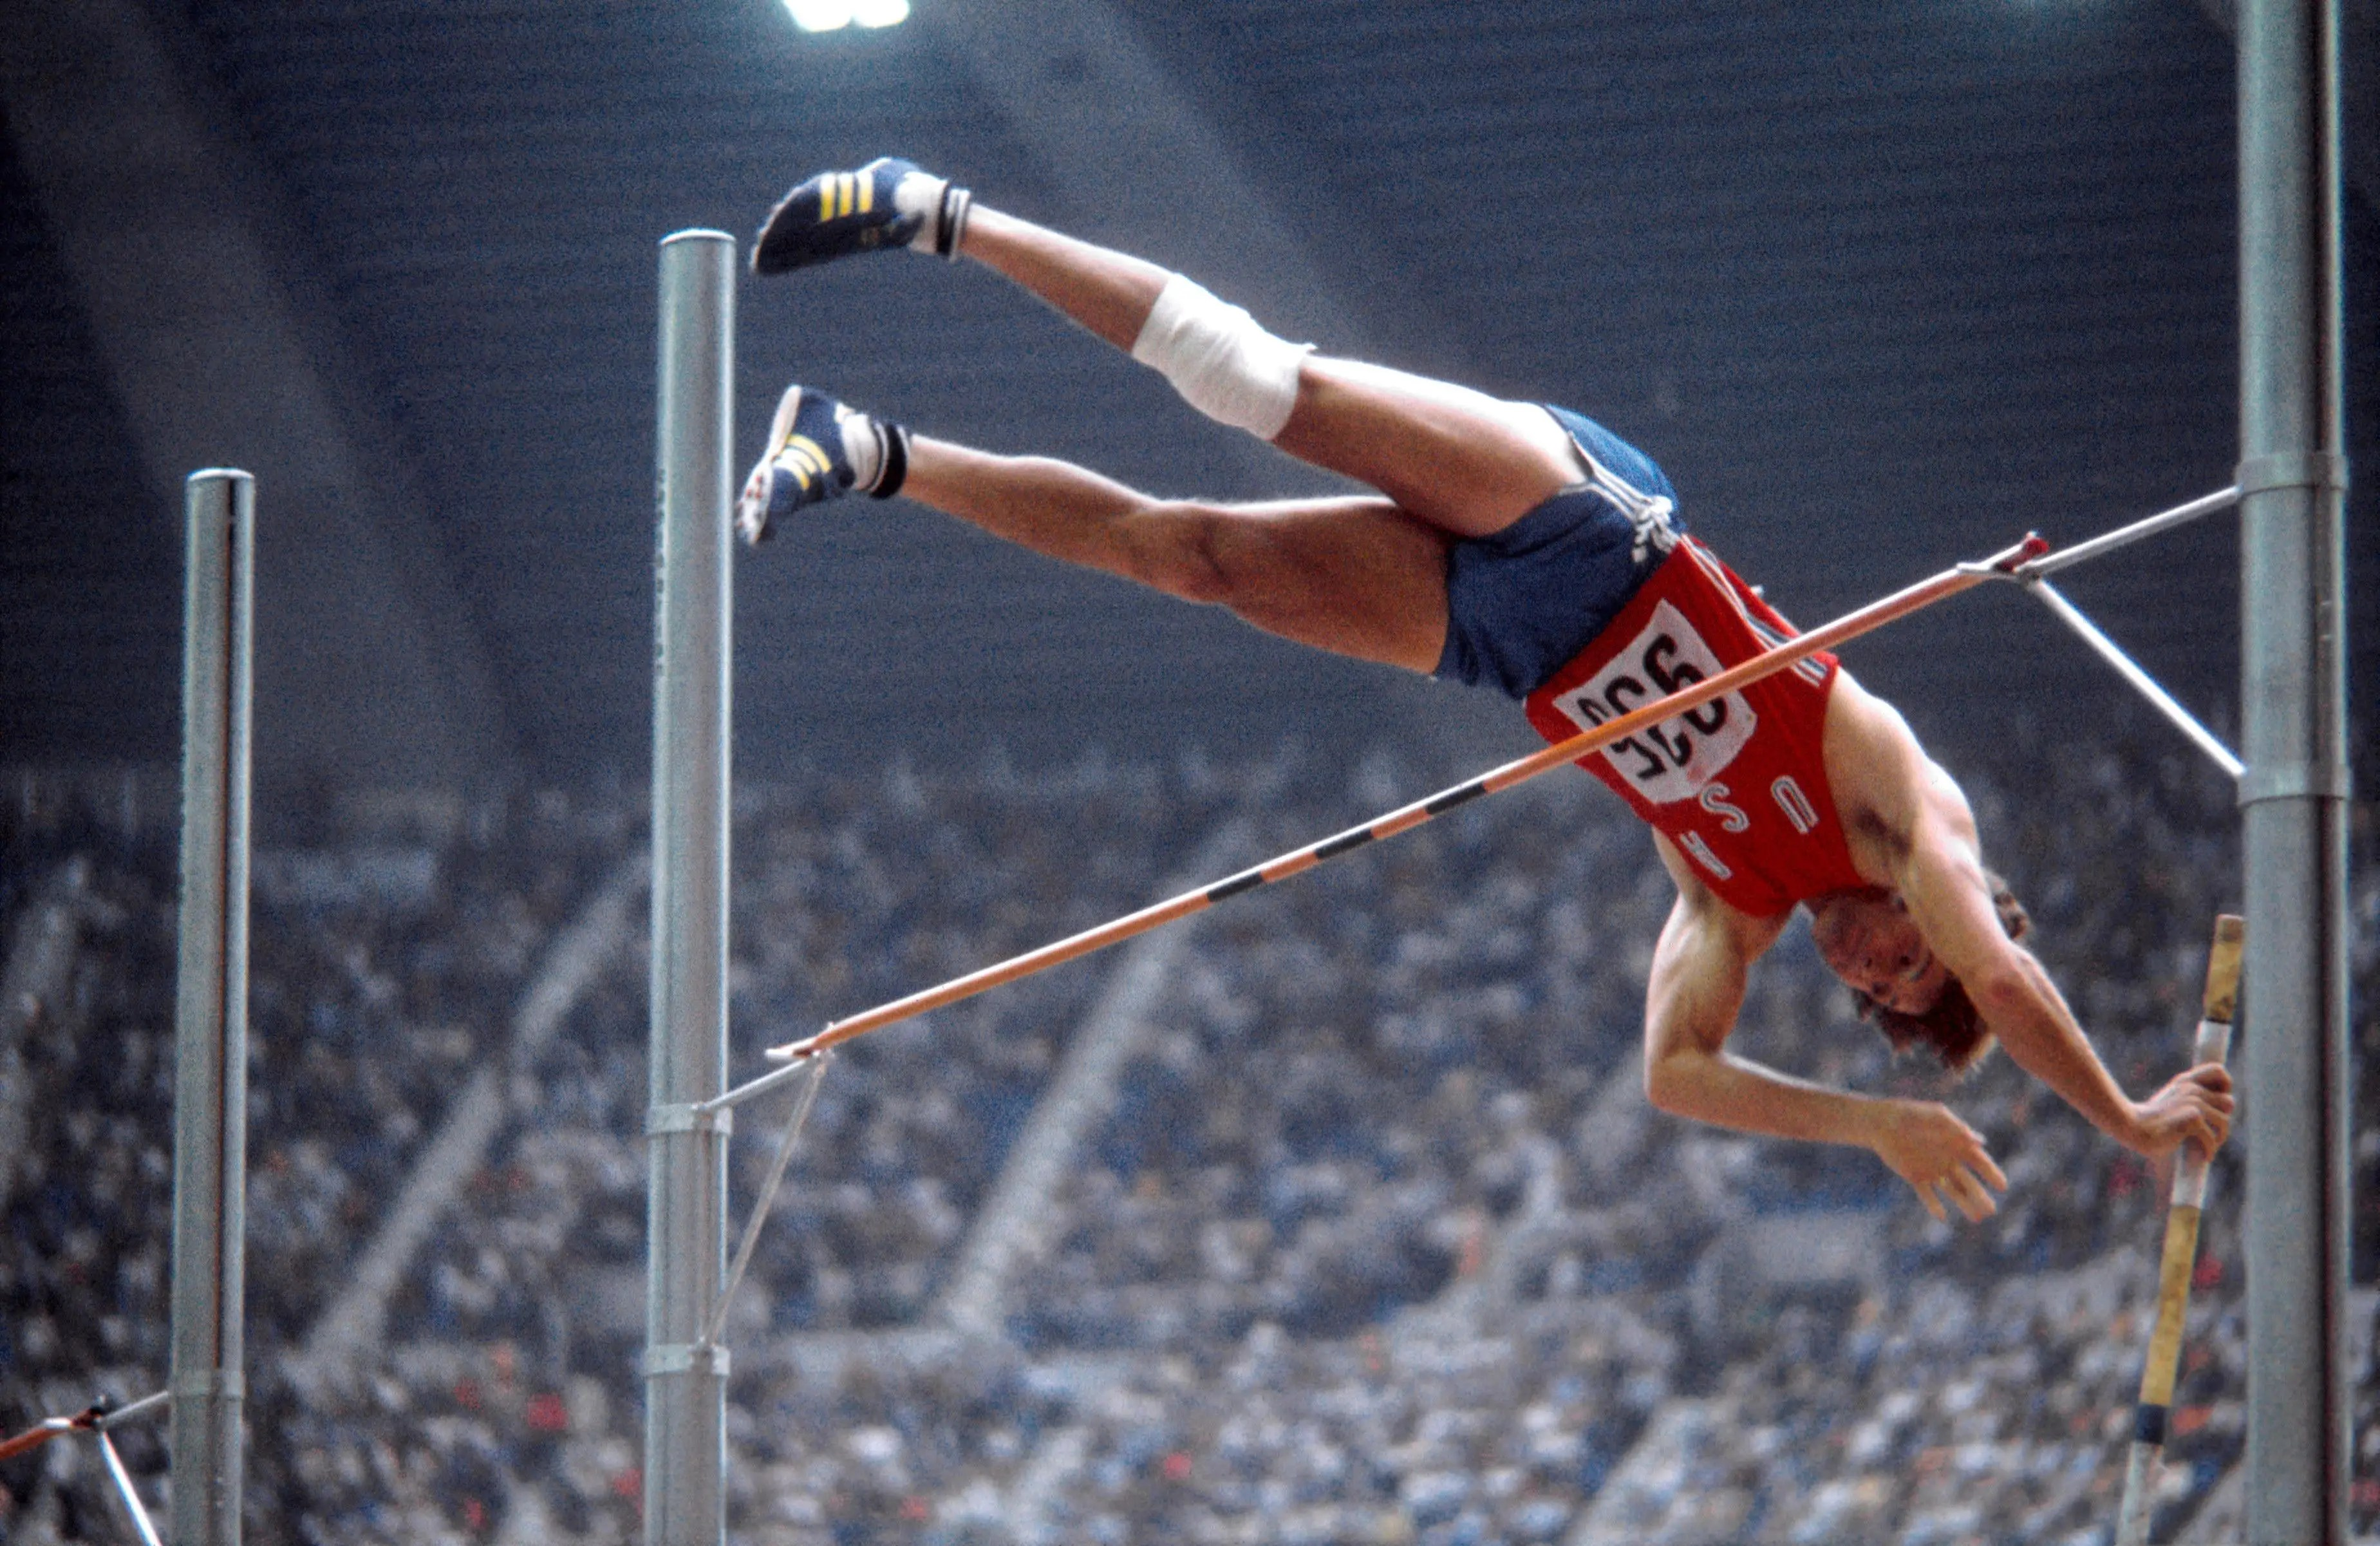 Montreal, 1976: The USA's Bruce Jenner became one of the country's most celebrated athletes this year by winning gold. This photo shows him clearing the bar during the pole vault discipline of the decathlon. 22 African nations boycotted the Olympics in 1976 after New Zealand sent its national rugby team to play in South Africa, which was under apartheid rule.